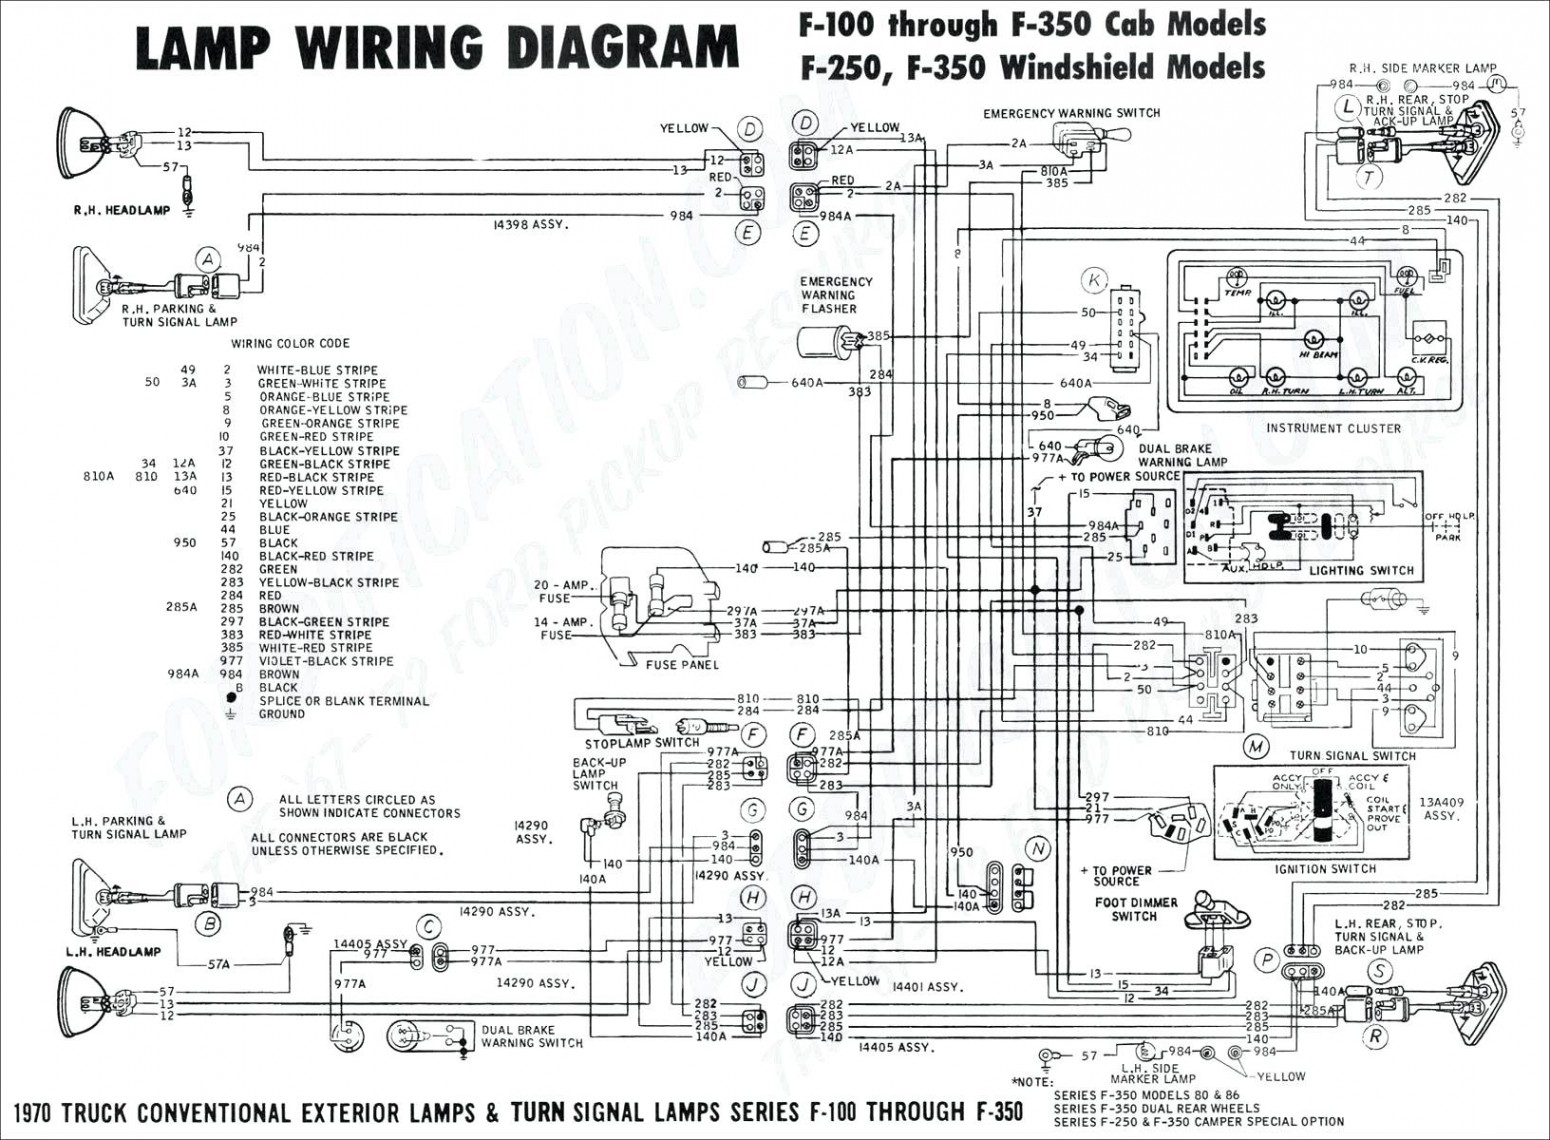 1999 Ford Expedition Wiring Diagram